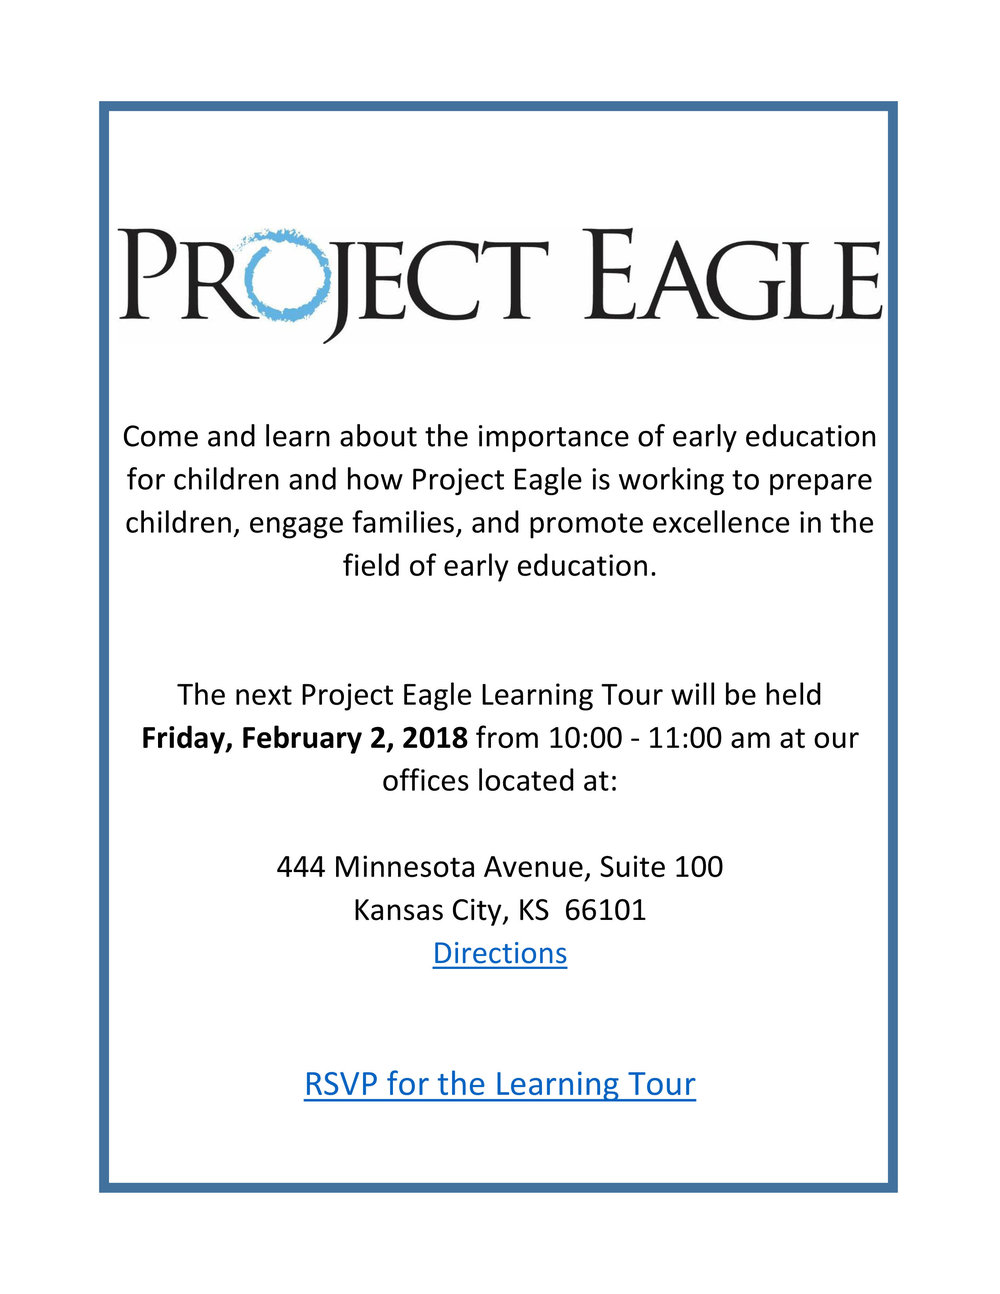 Project Eagle Learning Tour_Kansas City, Kansas_02.02.18.jpg